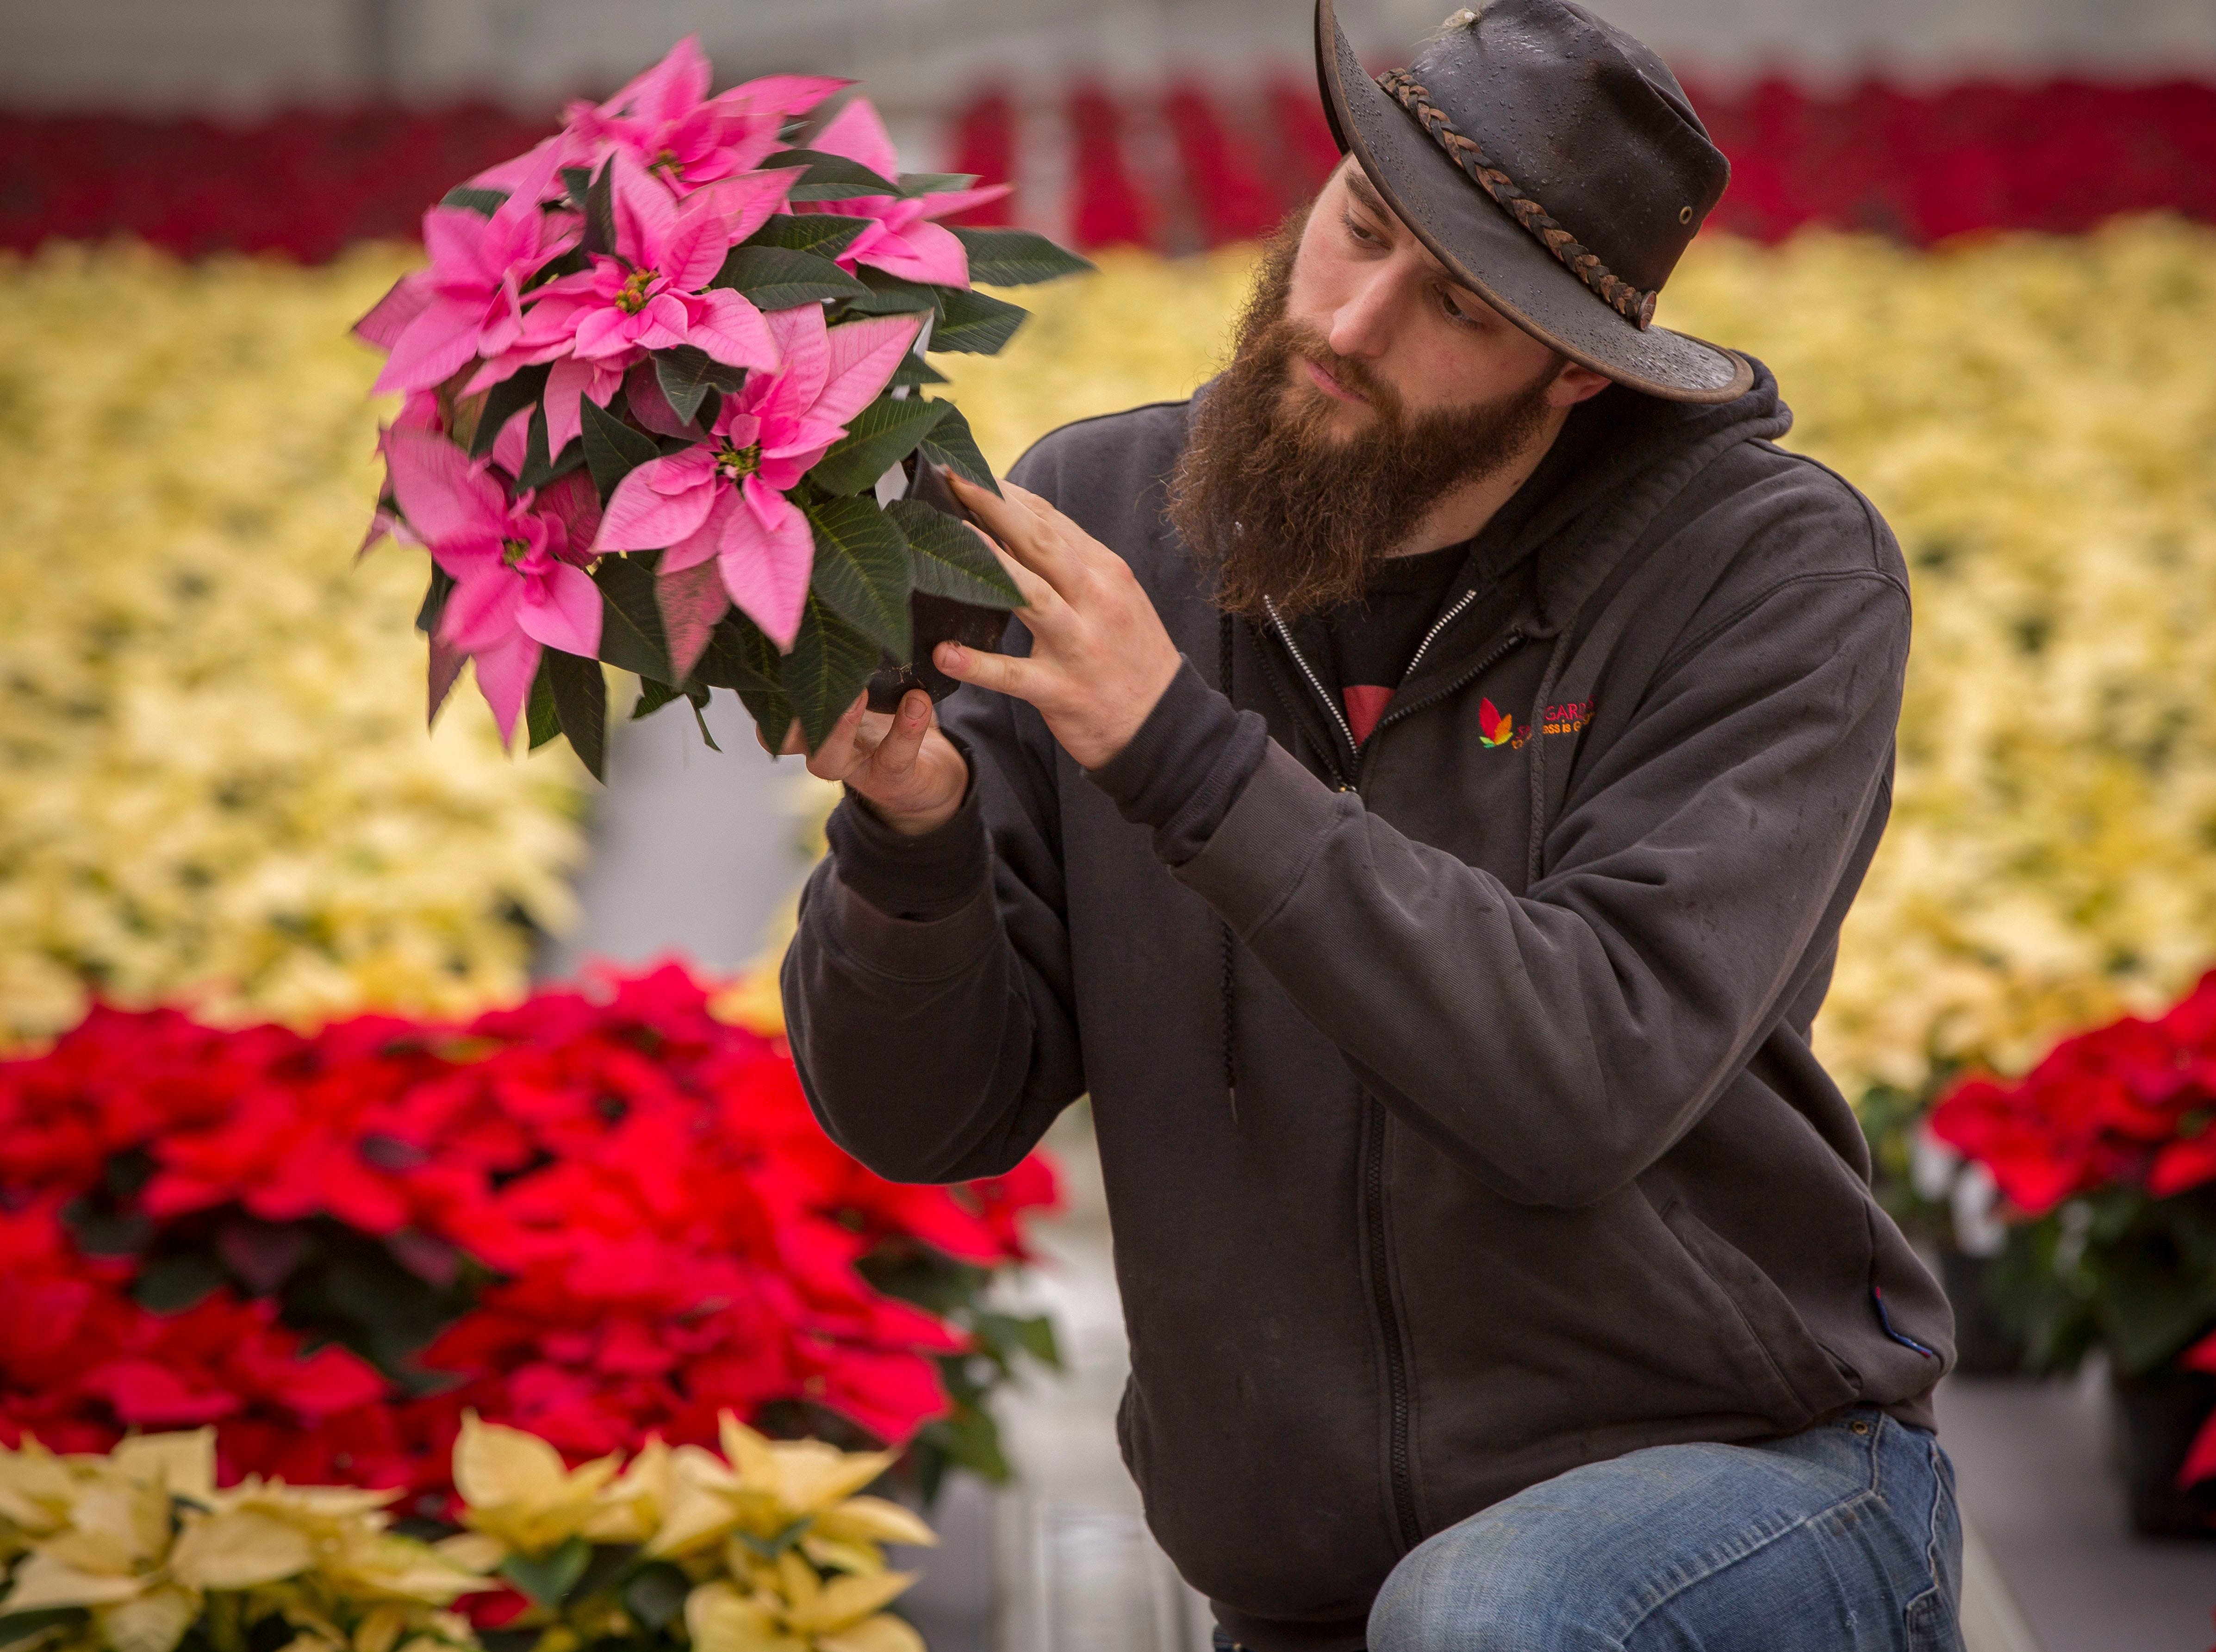 John Cunliffe, assistant head grower at Smith Gardens in Aurora, Oregon, inspects a 1.5 quart Princettia Pink poinsettia plant for the whitefly, a common poinsettia pest Friday November 30, 2018. Smith Gardens uses a biological approach to handling the insect by introducing beneficial predatory insects to fight the flies and reduce the need for pesticides. Cunliffe is inspecting the plants before they are packaged for one of the last shipments of the year in early December. The plants go to local big box stores.